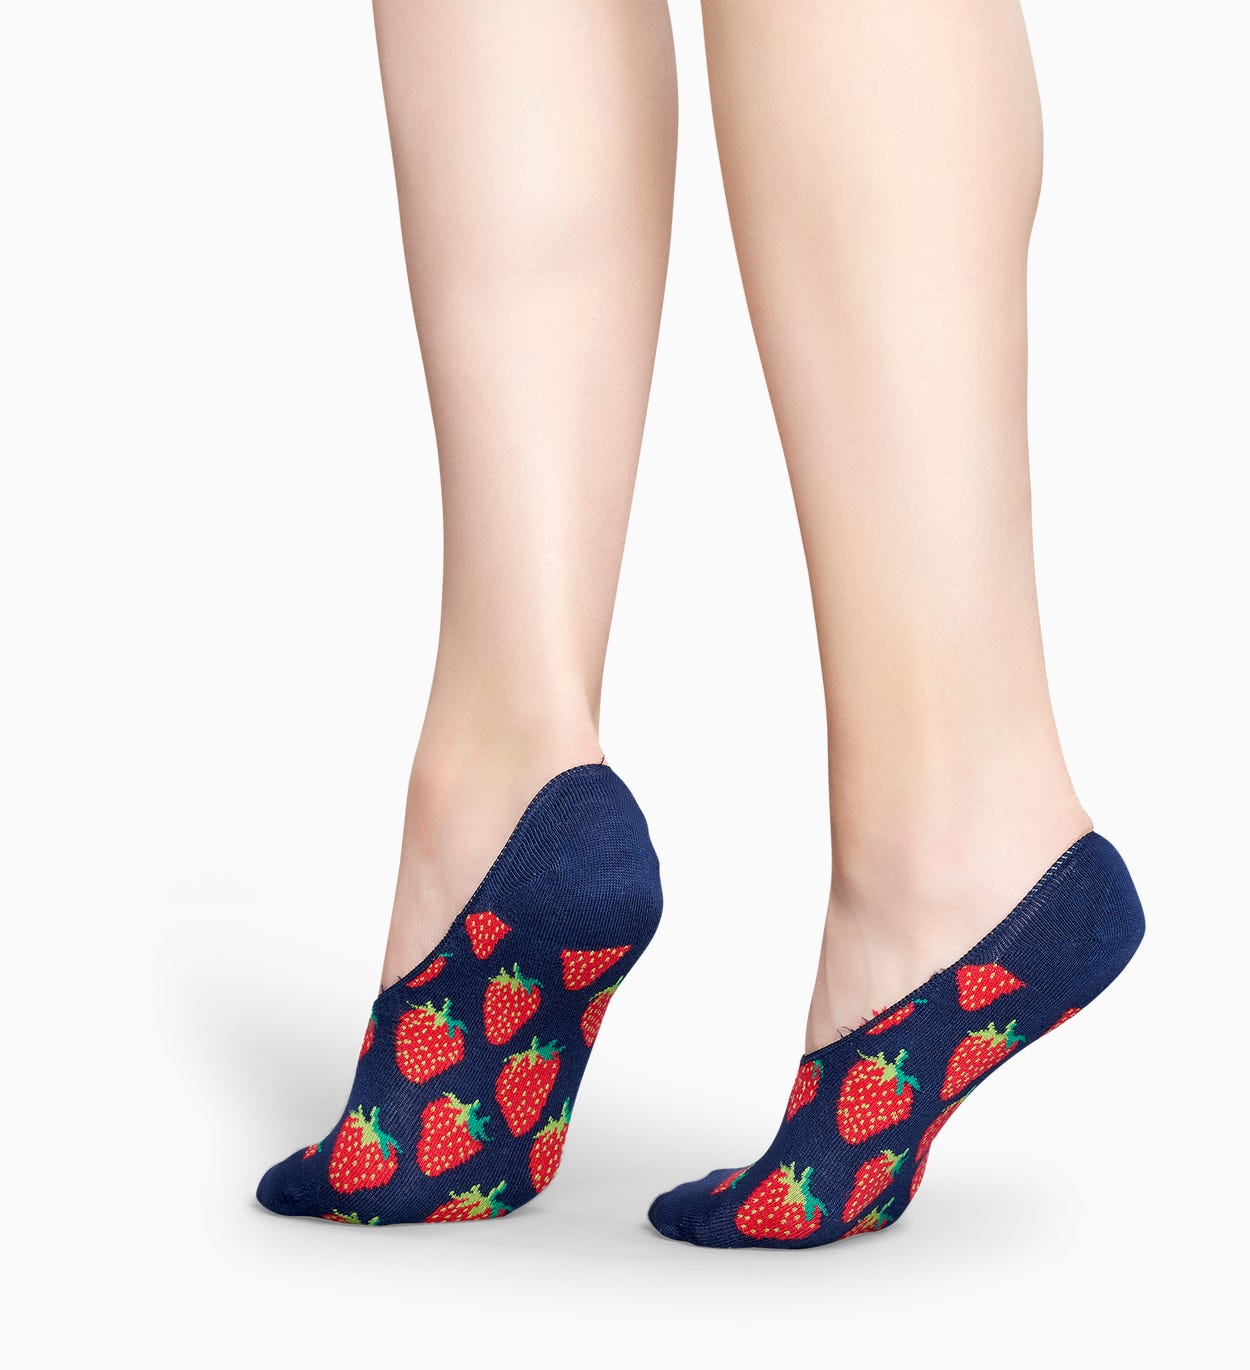 Blaue Füßlinge mit Erdbeer-Muster: Strawberry | Happy Socks